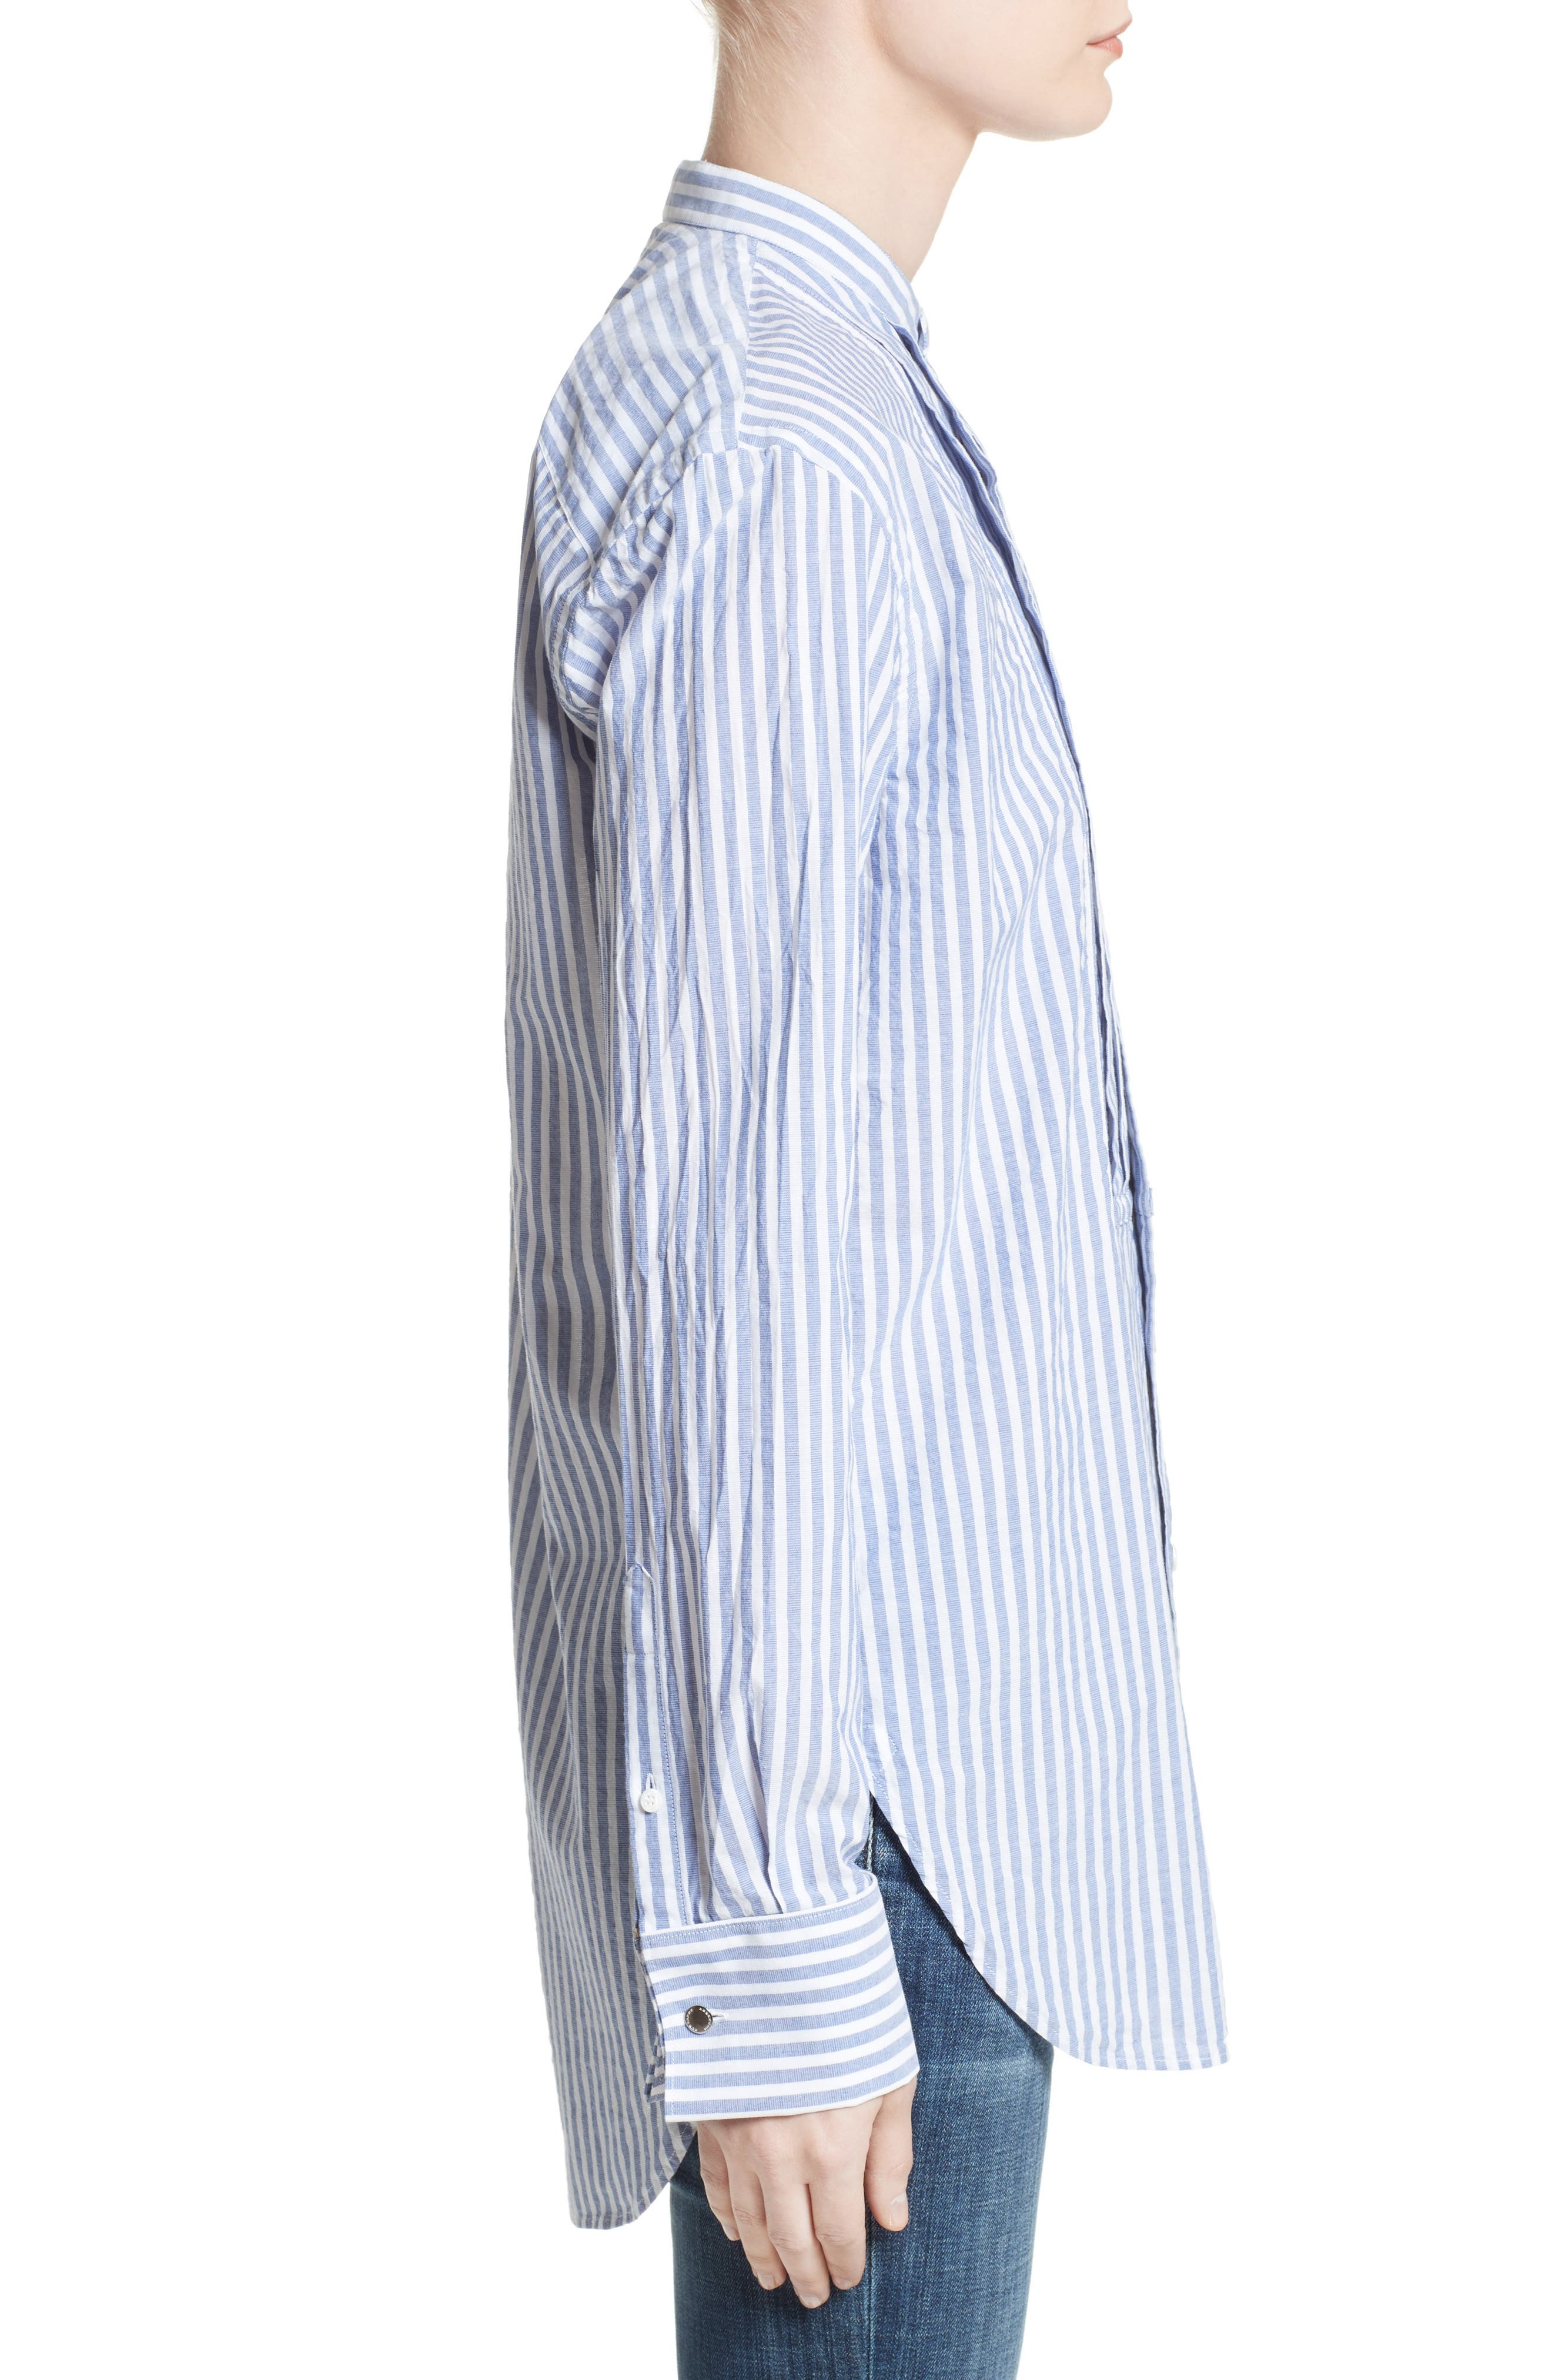 Benfleet Stripe Cotton Top,                             Alternate thumbnail 3, color,                             456